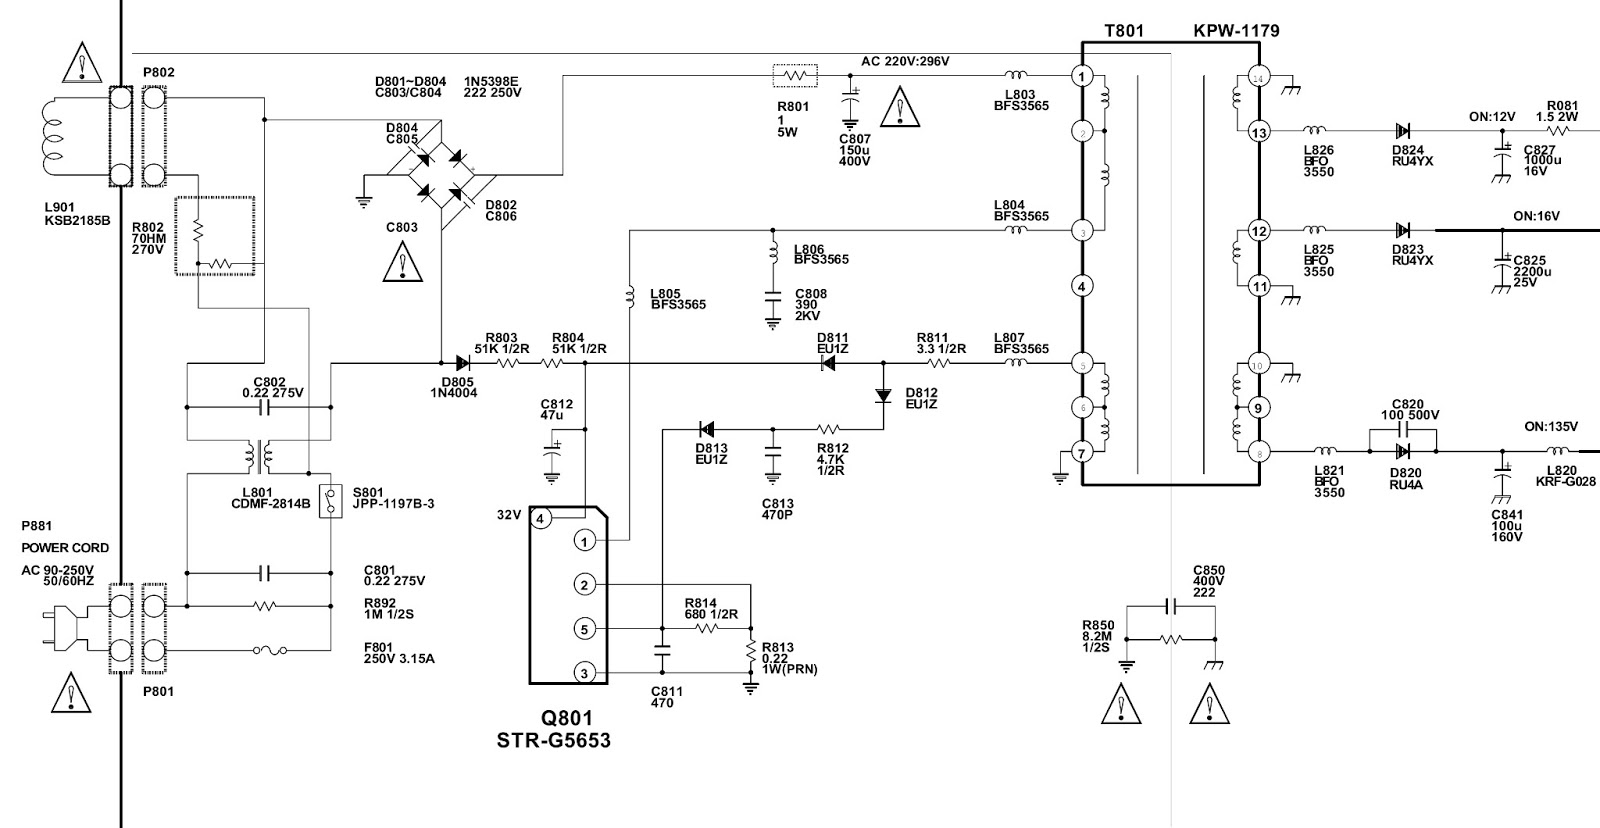 str g5653 smps power supply circuit schematic diagram. Black Bedroom Furniture Sets. Home Design Ideas